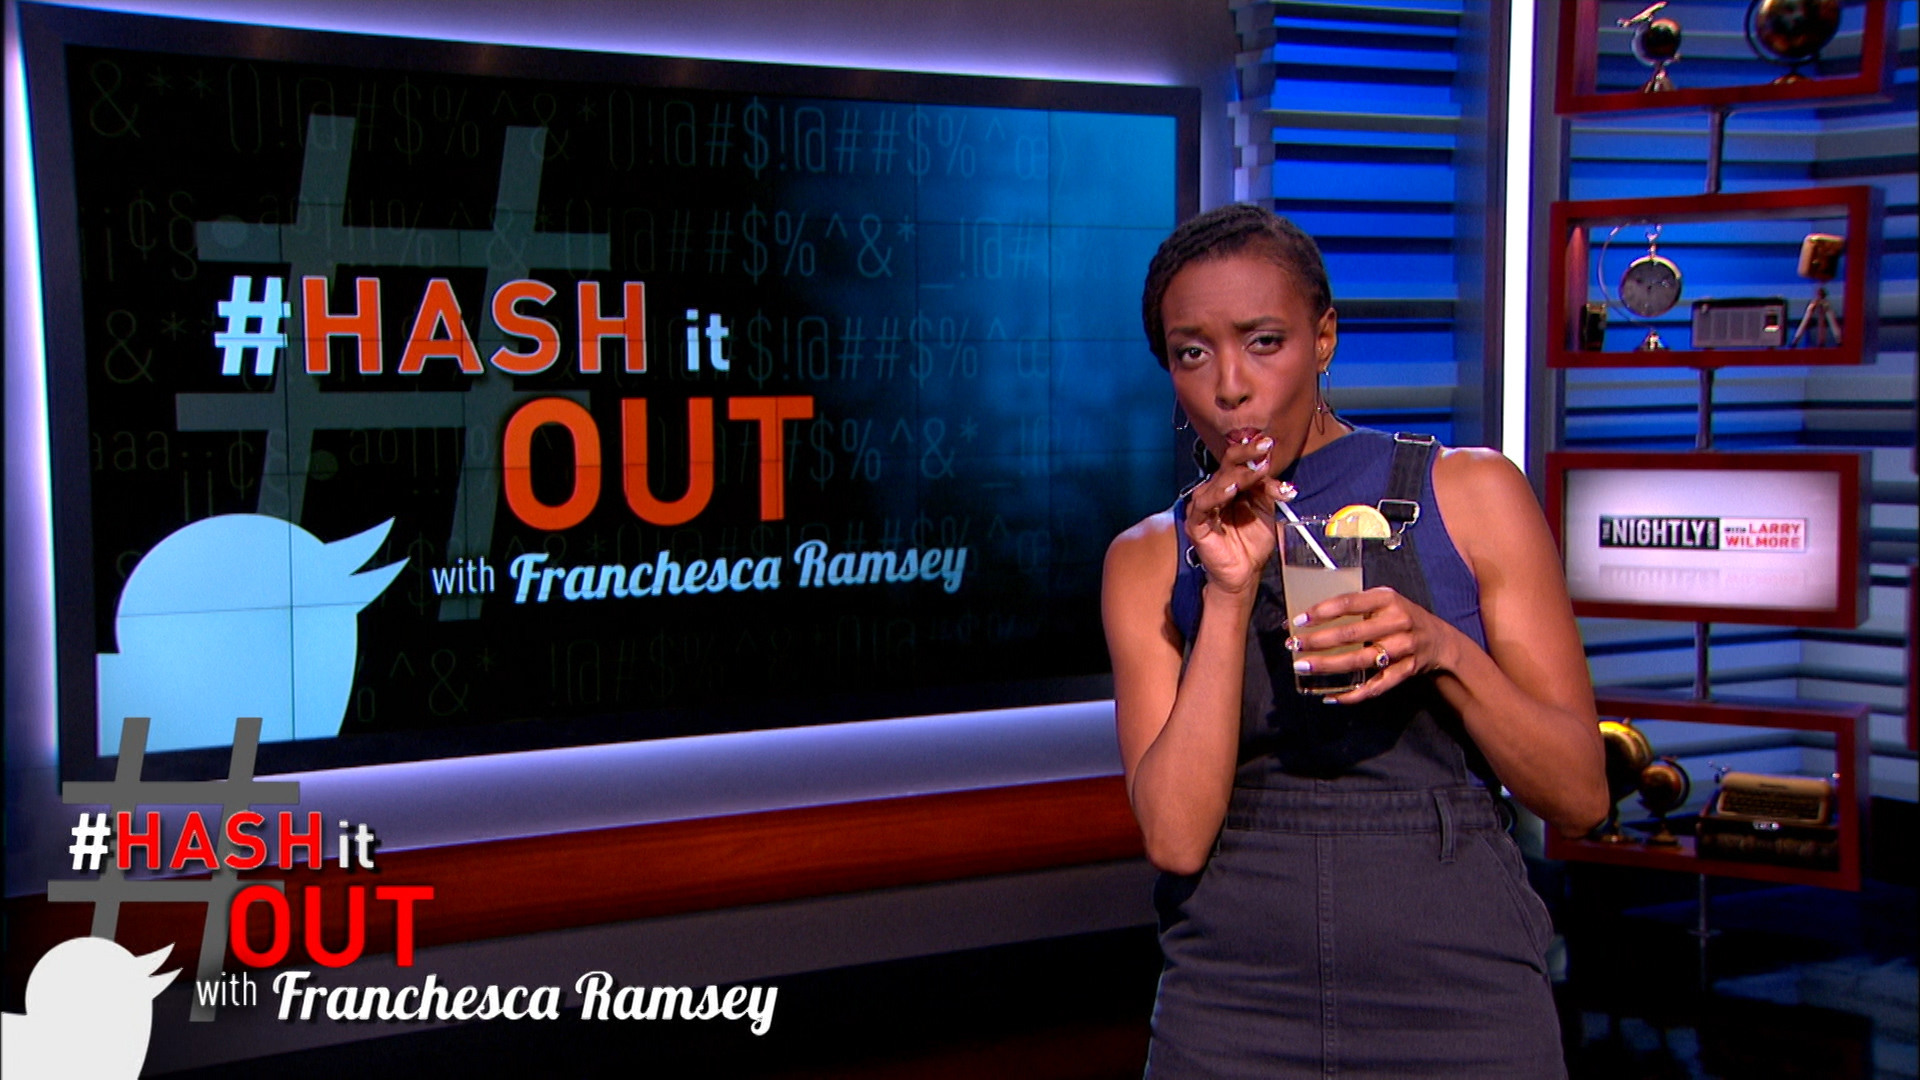 THE NIGHTLY SHOW - FRANCHESCA RAMSEY CLAPS BACK AT PIERS MORGAN OVER BEYONCE'S